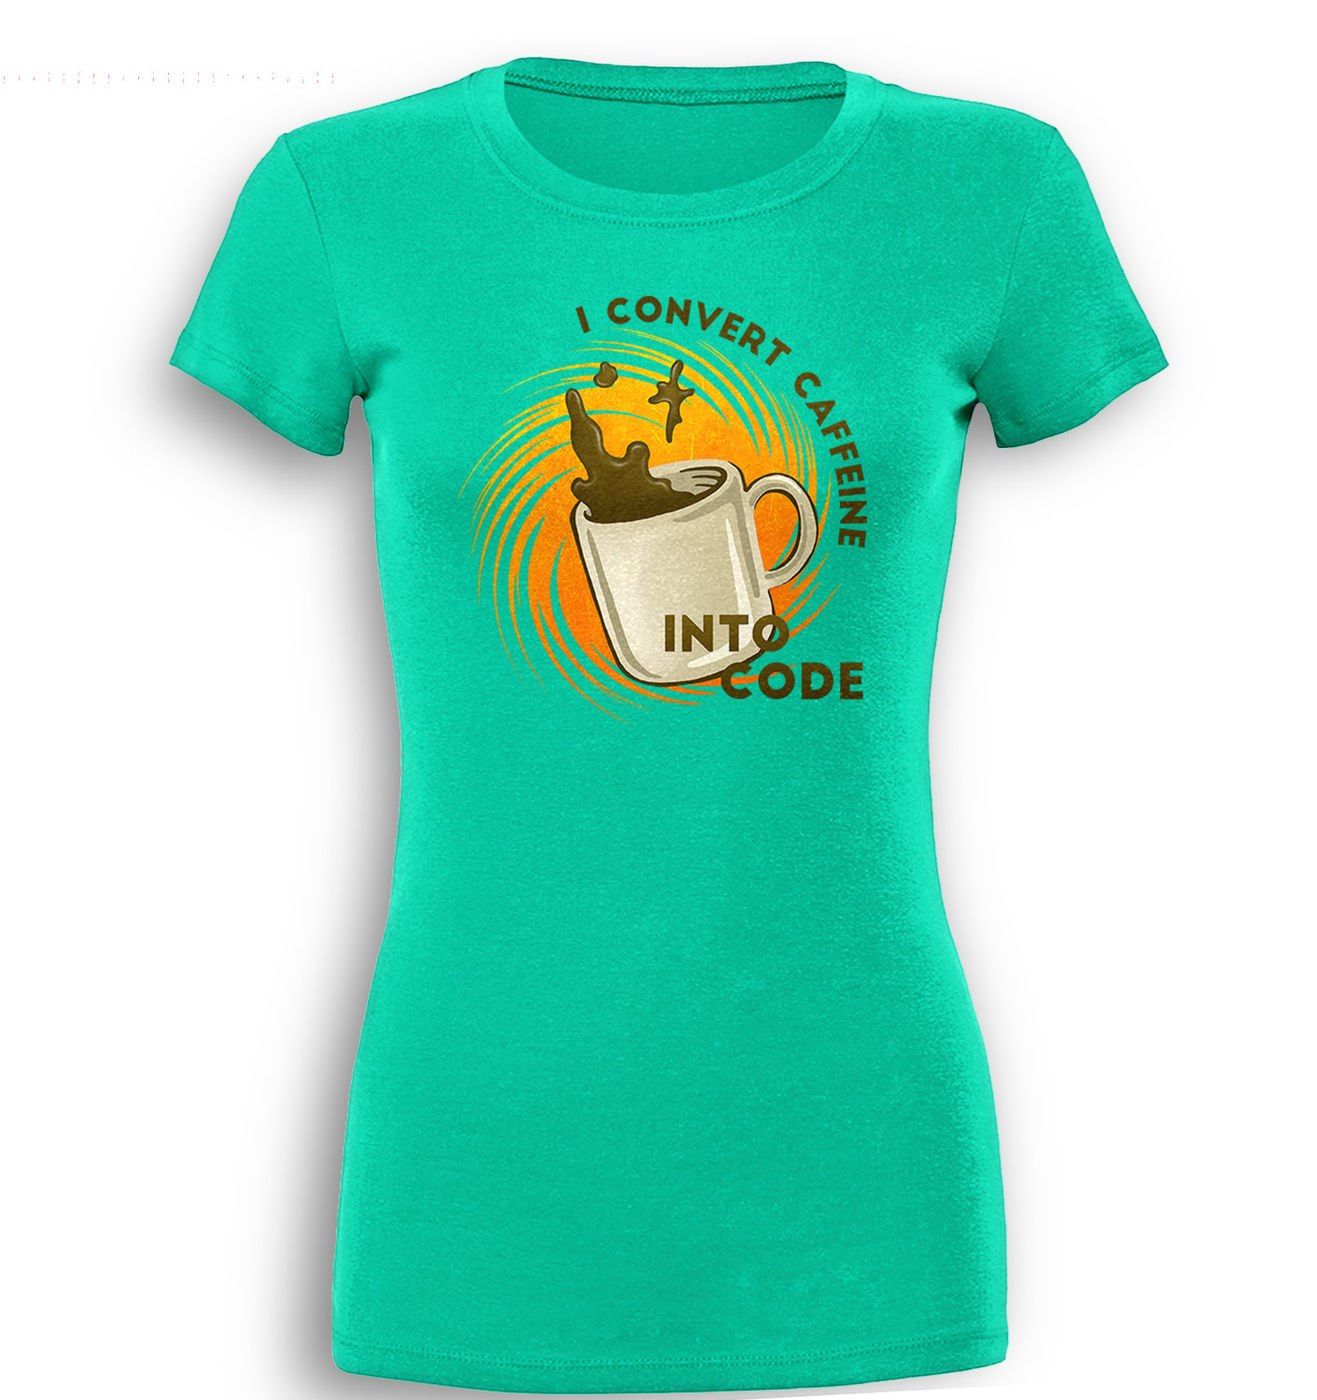 Convert Caffeine Into Code premium women's t-shirt by Something Geeky